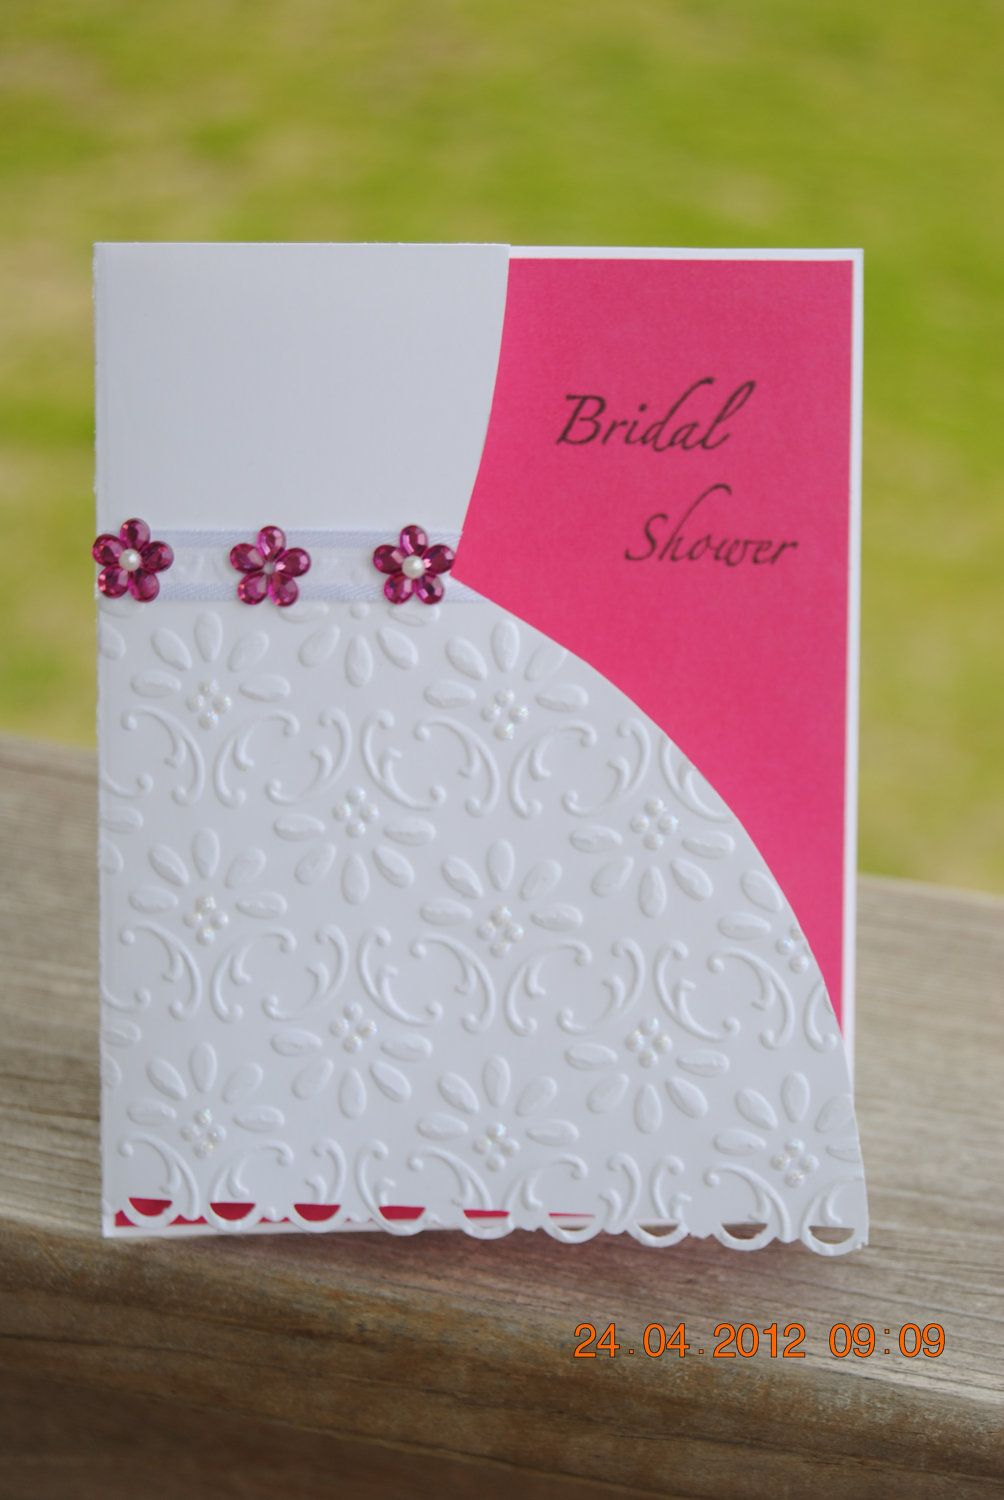 Handcrafted Embossed Bridal Shower Card 3 50 Via Etsy